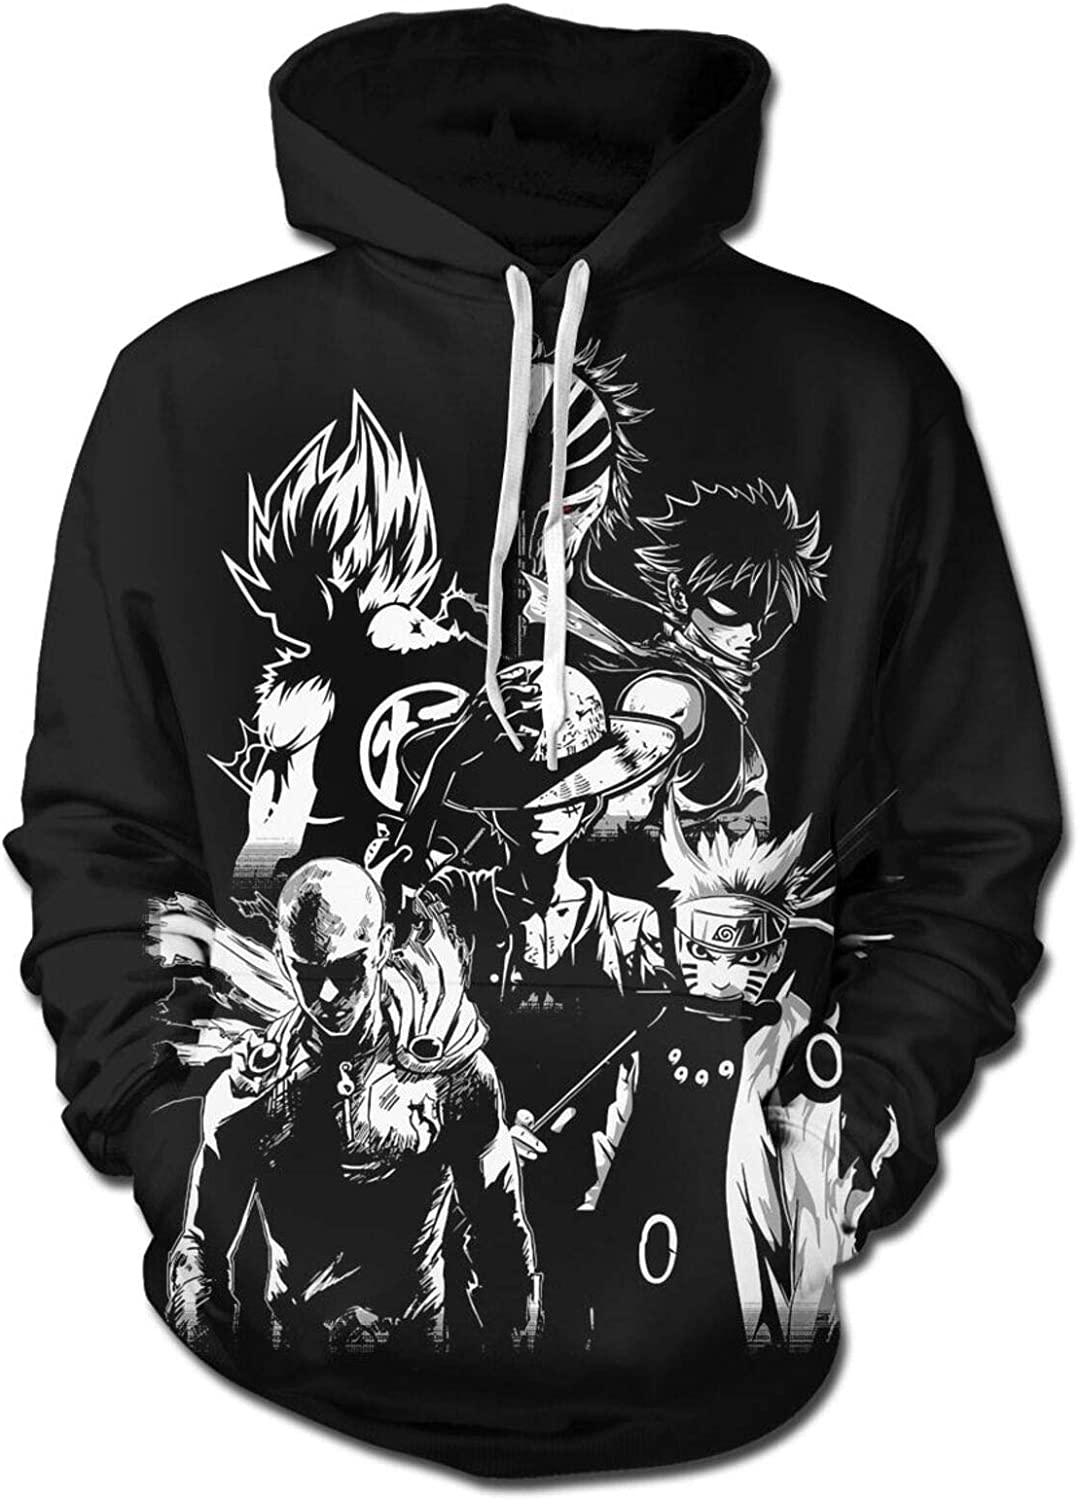 Mens 3D Print Anime Hoodie Ranking TOP8 Sweatshirt Limited price Pullover Pocket with Front